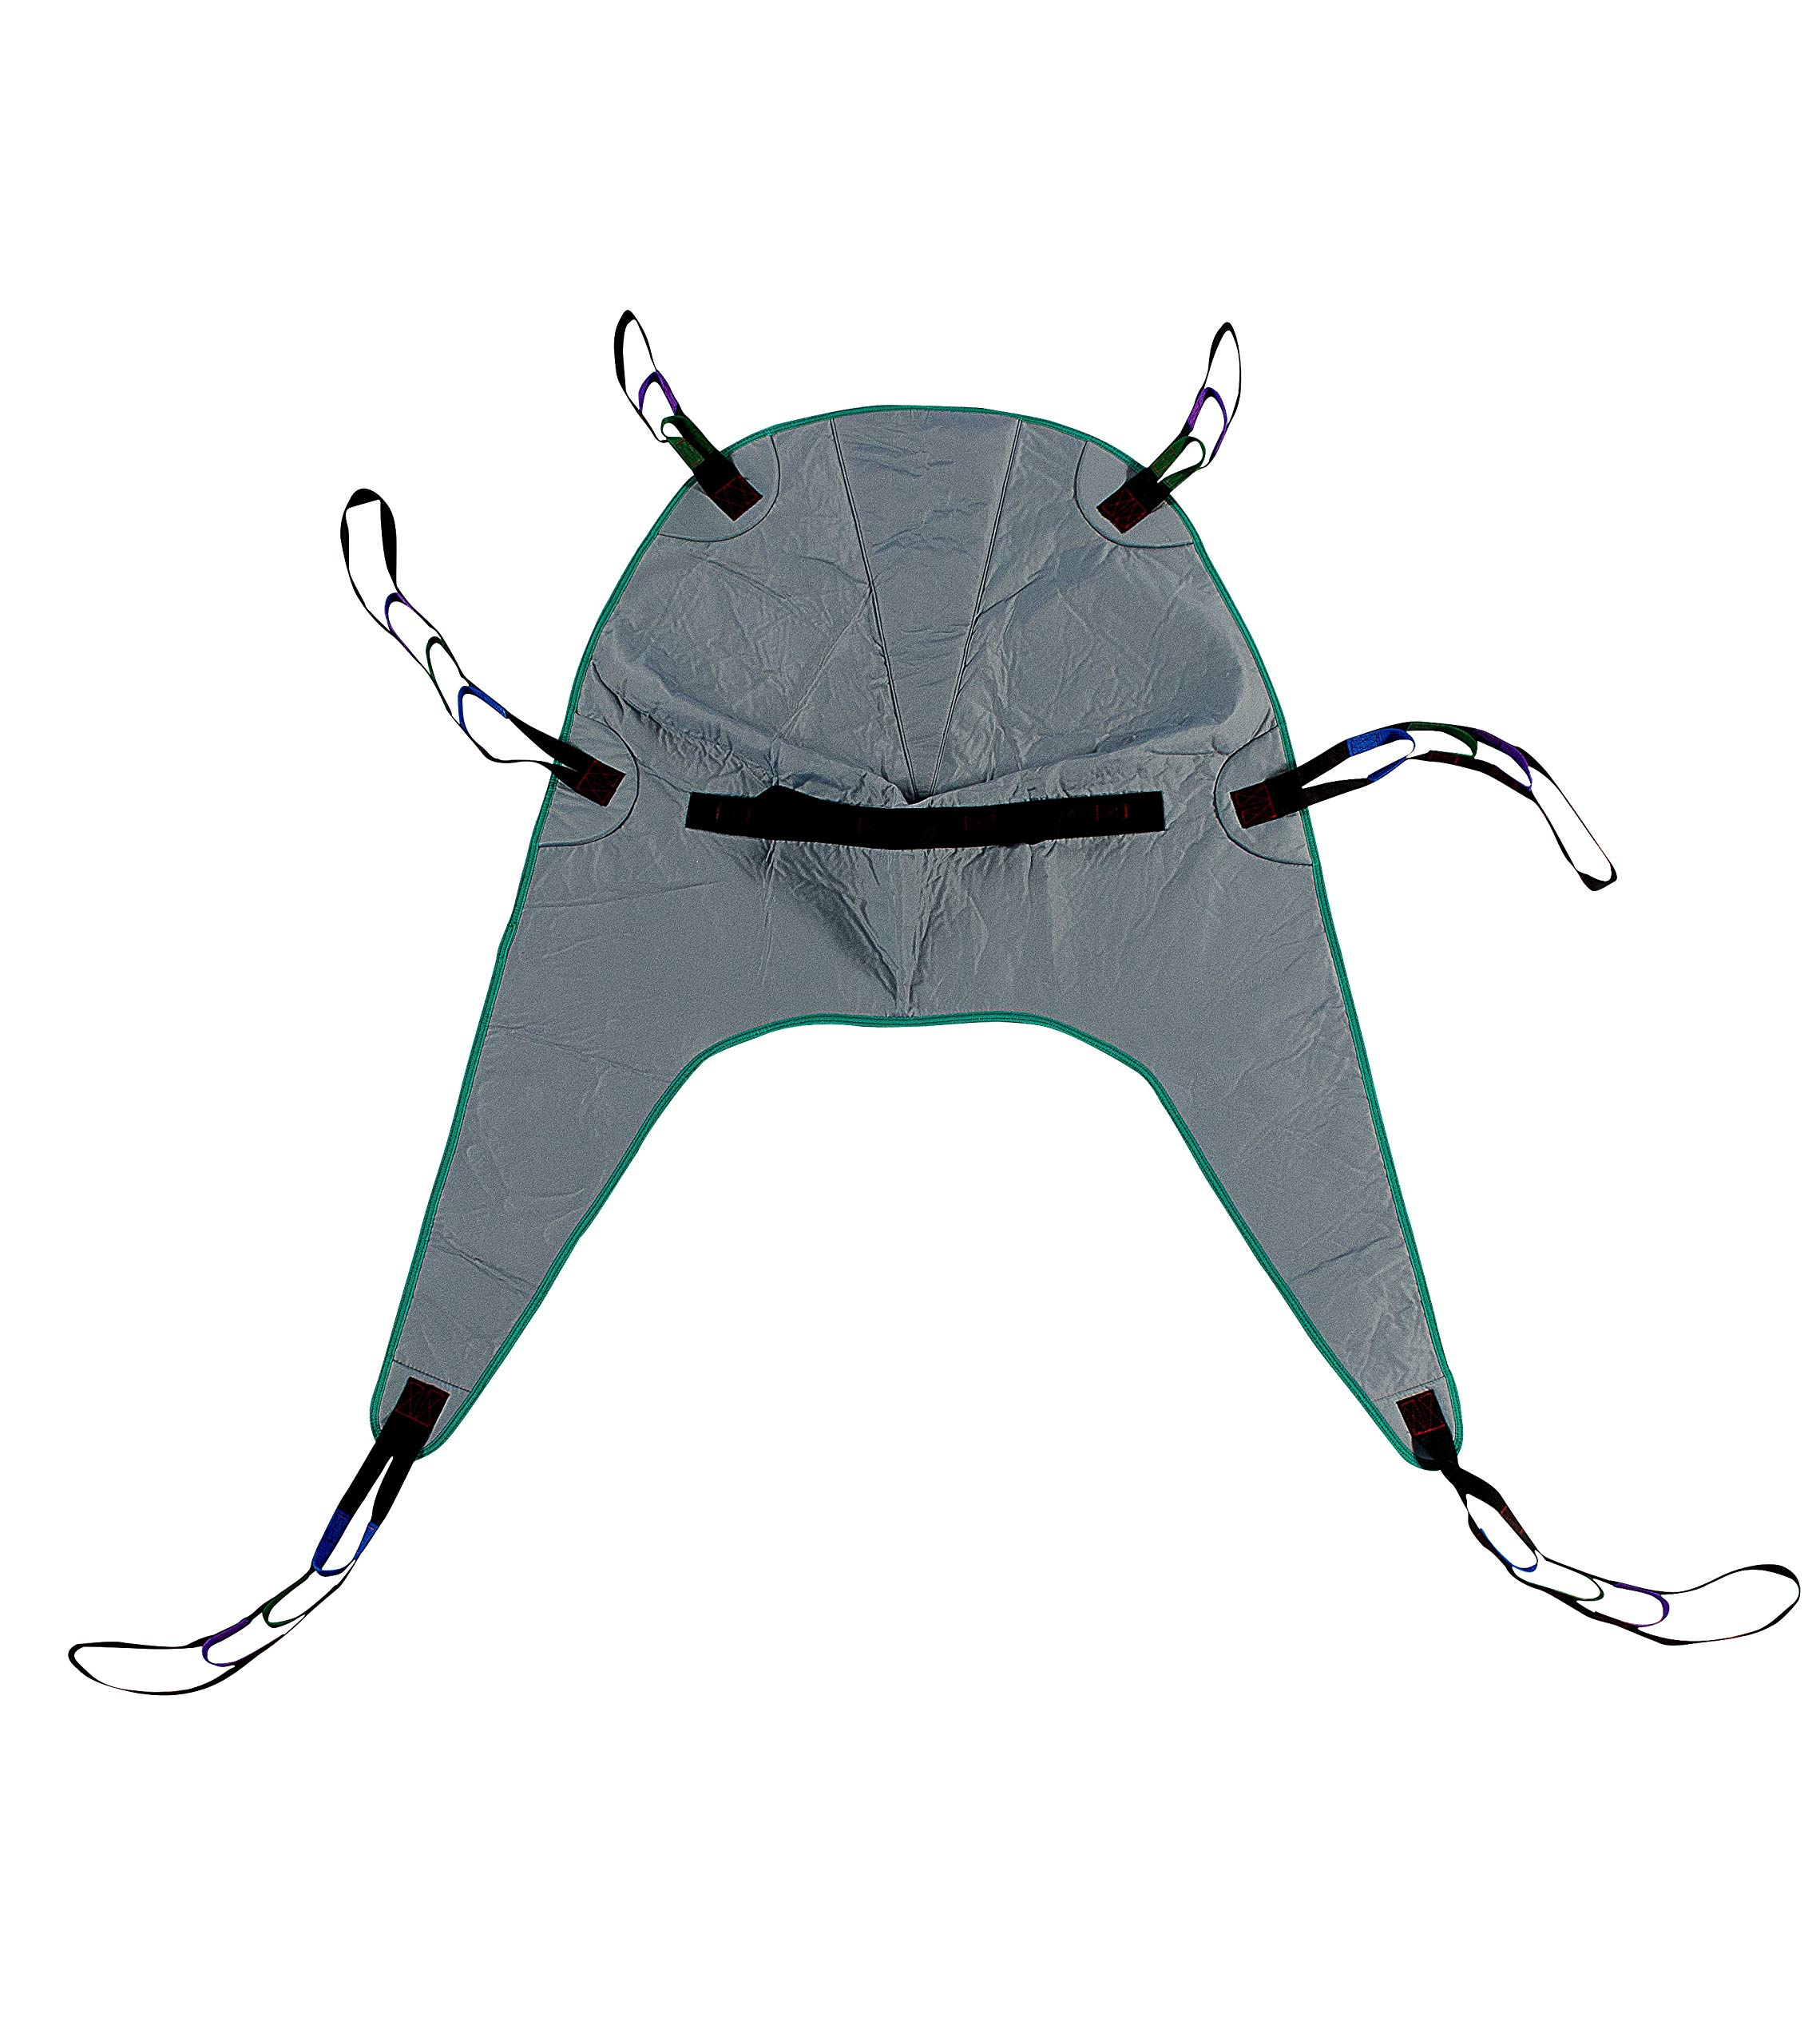 Divided Leg Padded Patient Lift Universal Sling with Head Support, Size Medium, 450lb Capacity by Patient Aid